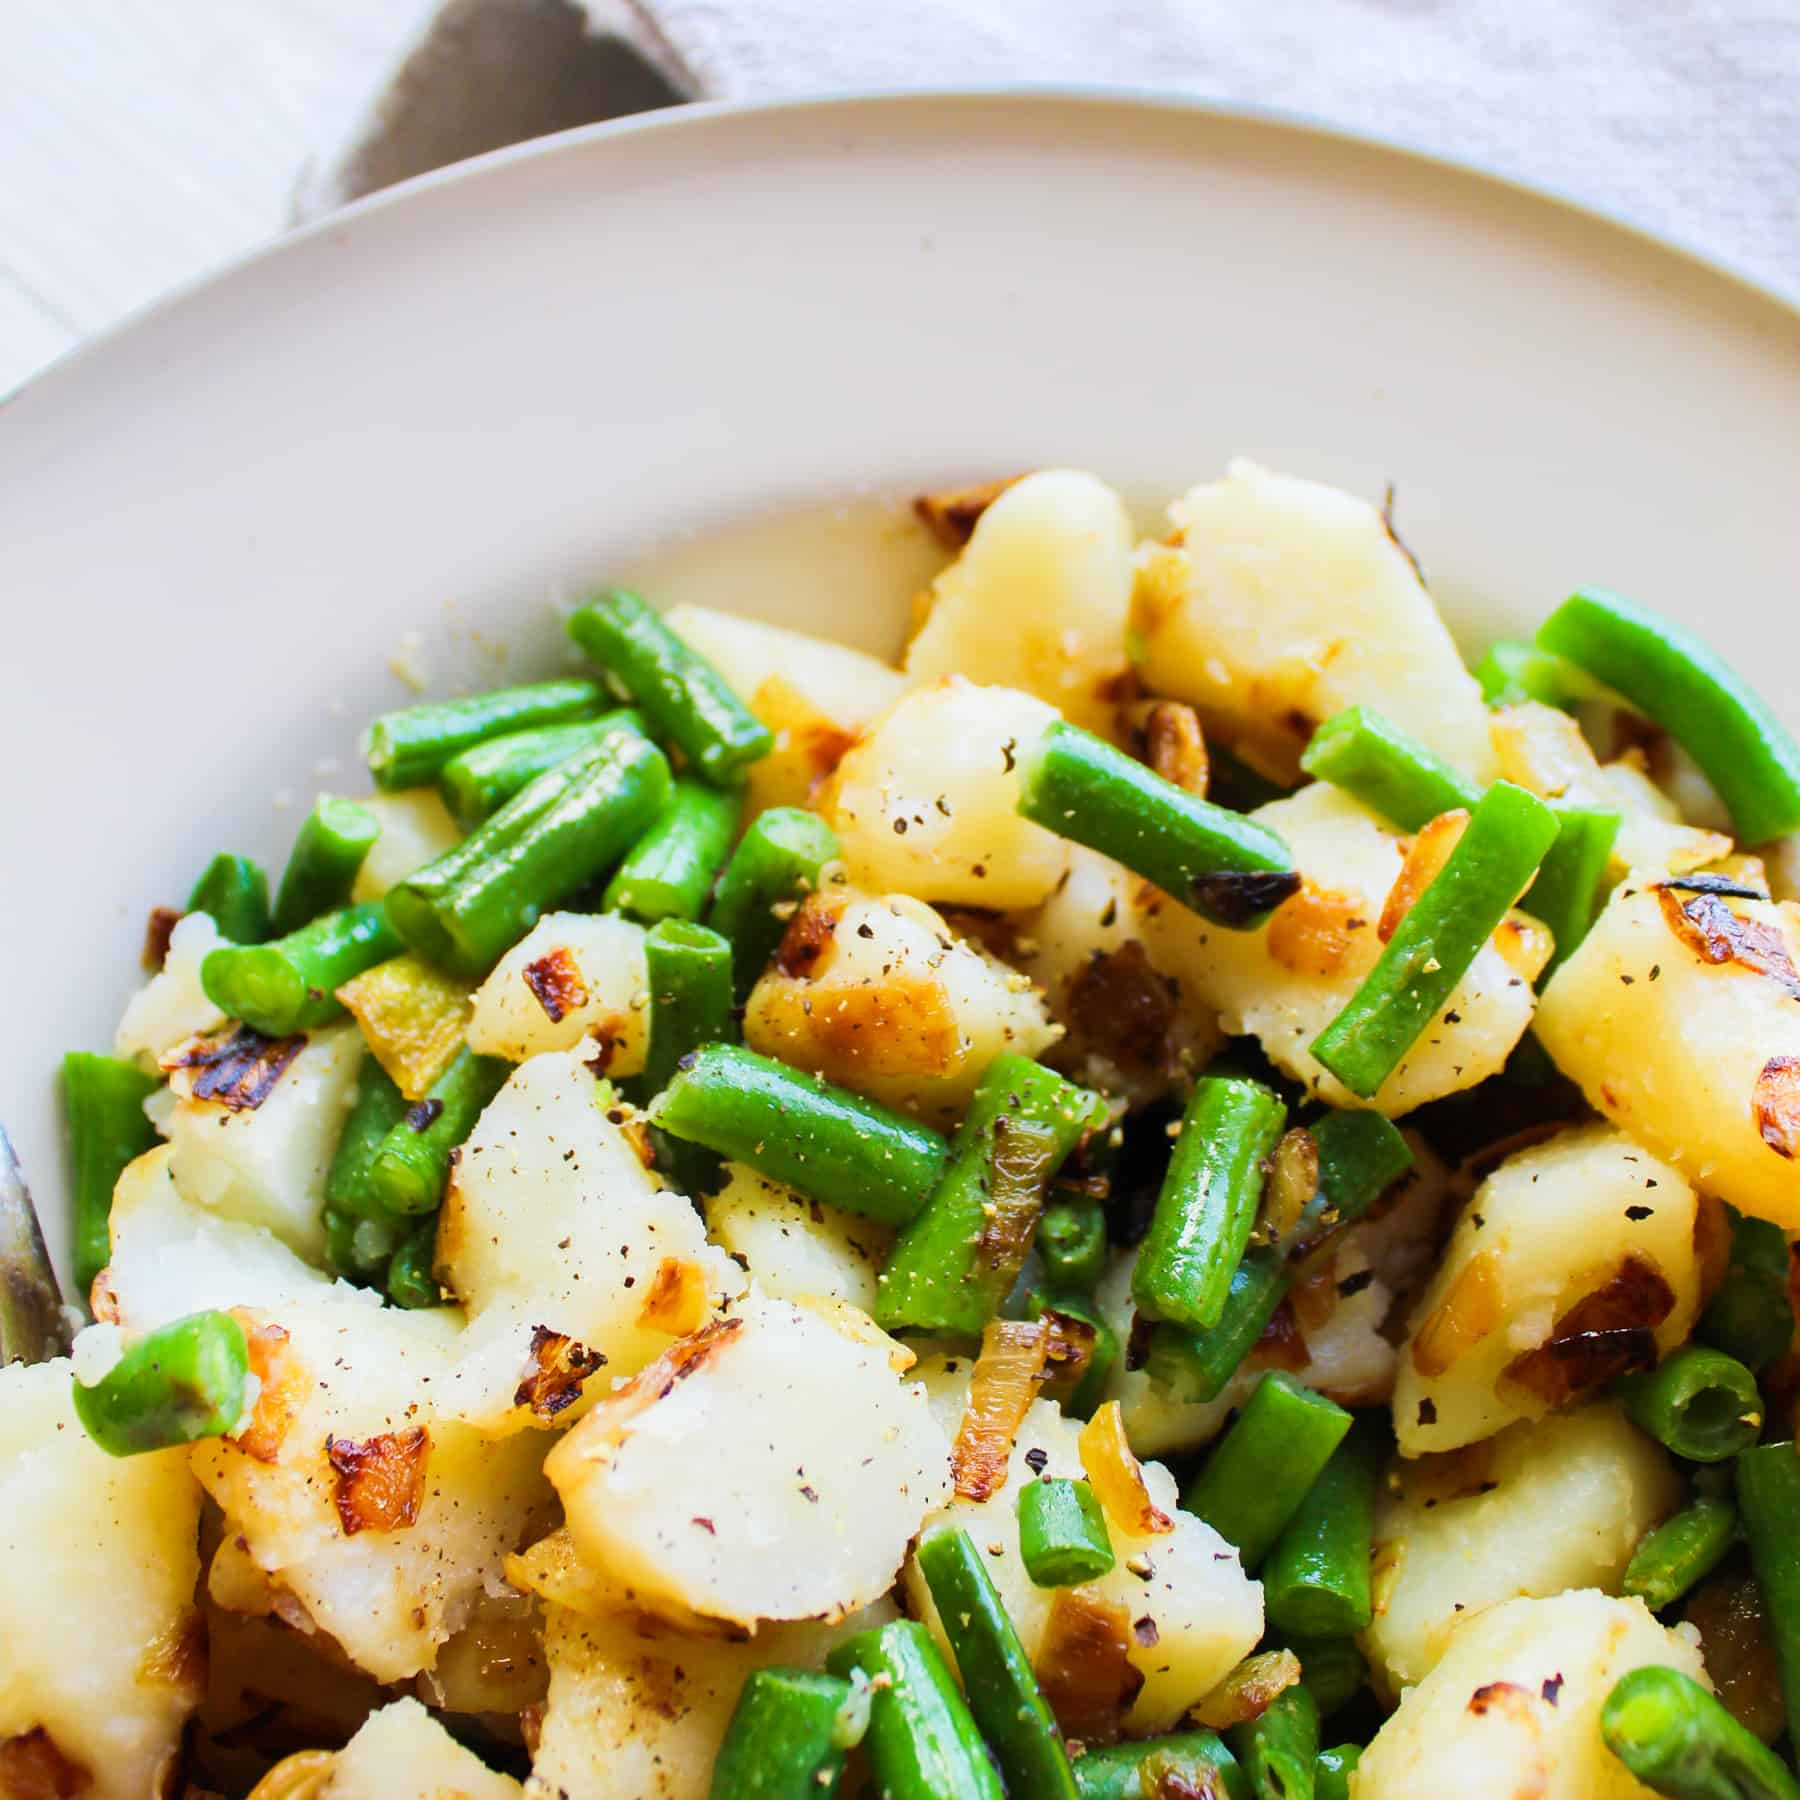 clean eating with kids - green beans and potatoes